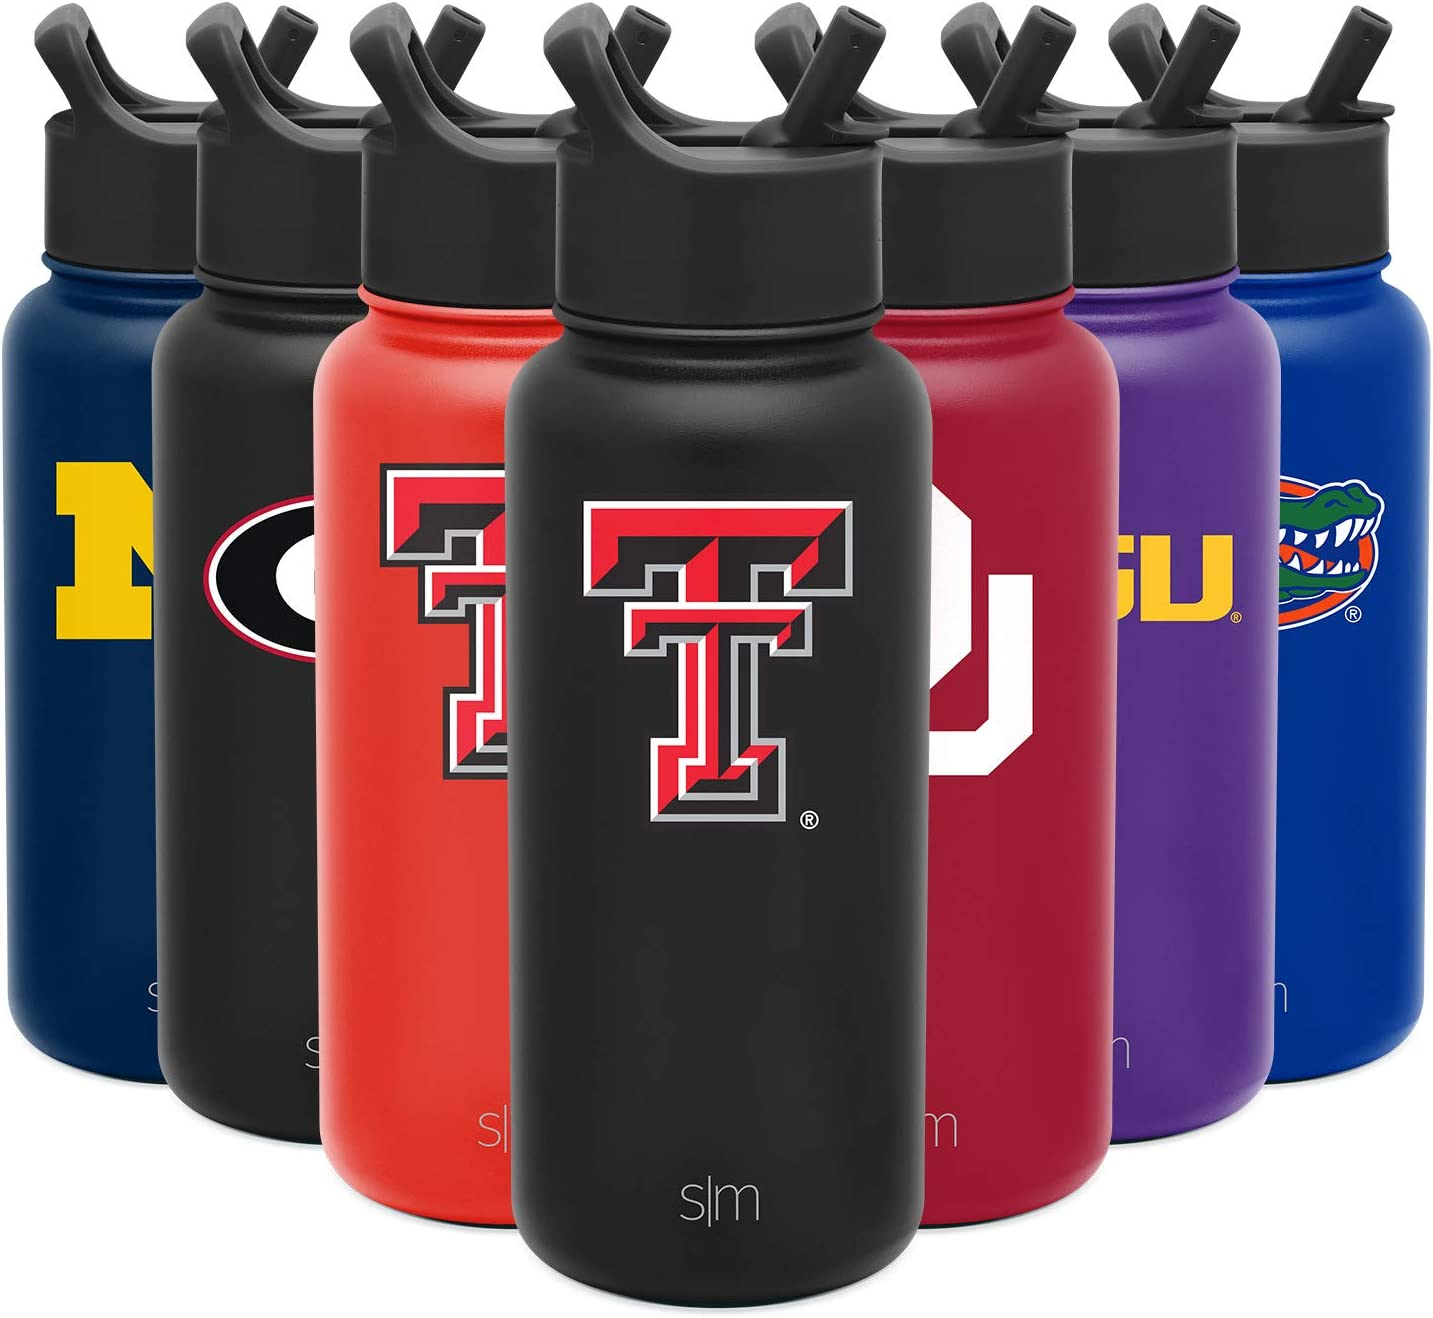 Simple Modern 32oz Summit Water Bottle with Straw Lid Gifts for Men Women Dads Texas Tech Red Raiders Leakproof Travel Tumbler Stainless Steel